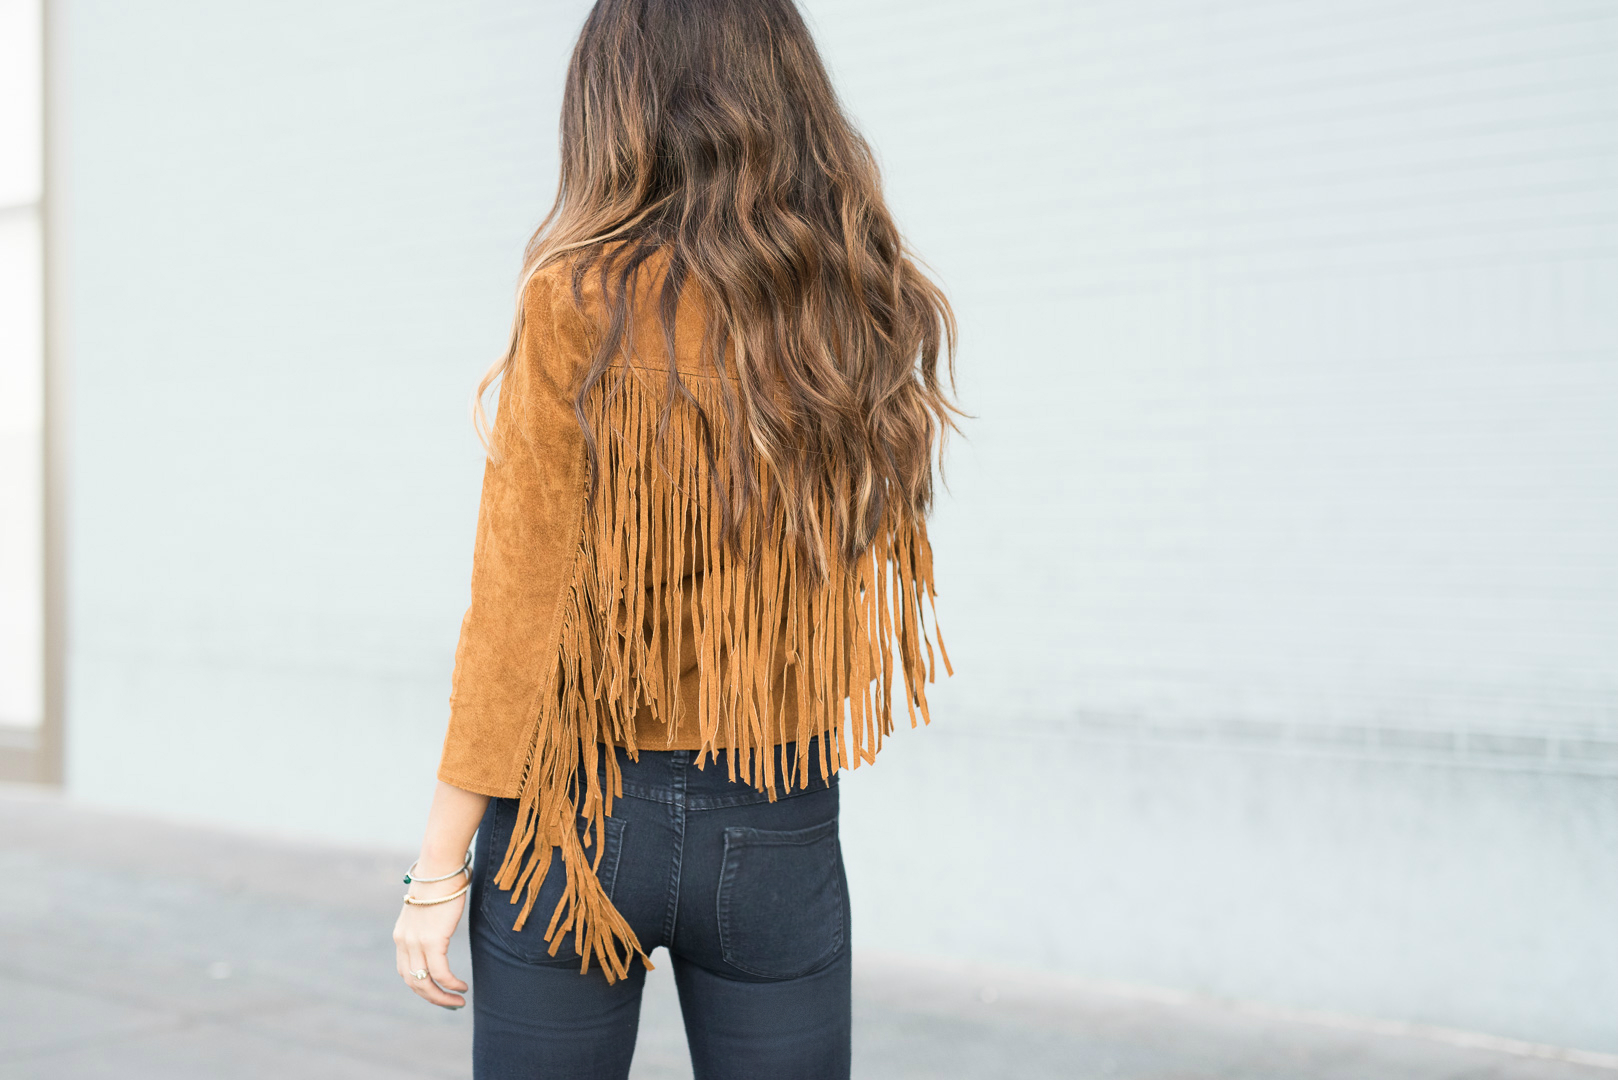 Suede Fringe Jacket, Long Hair